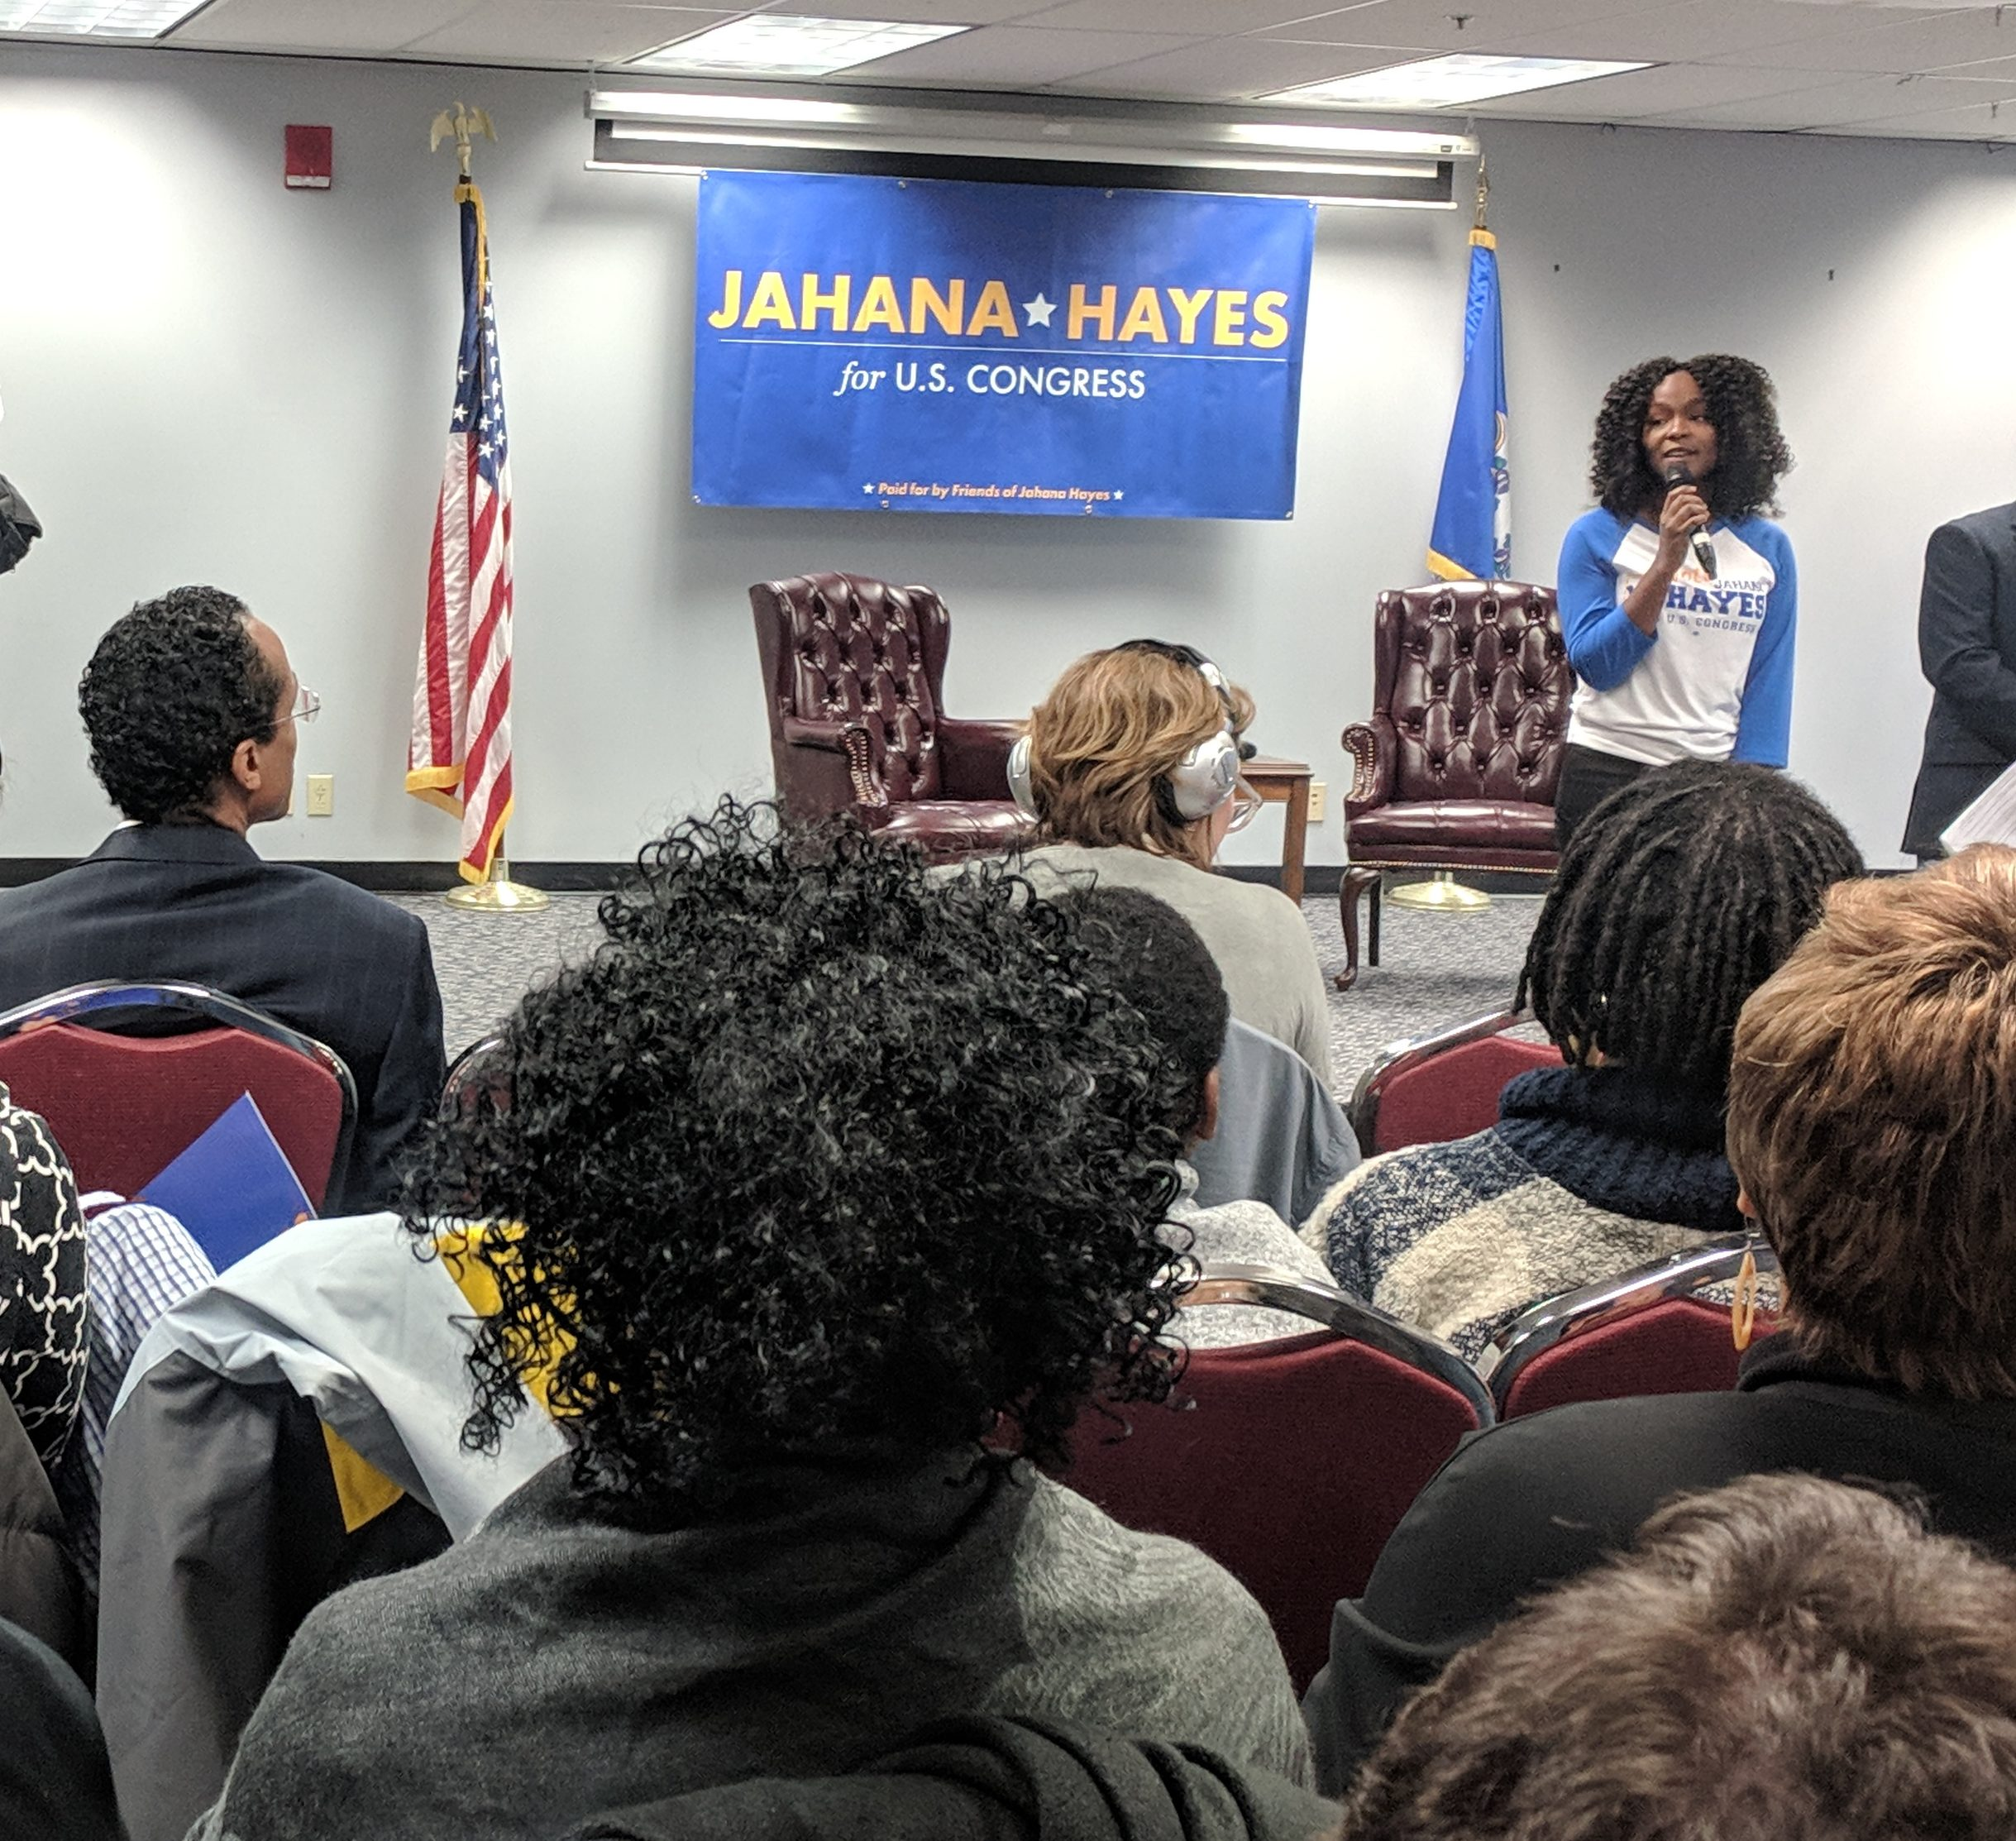 An 'army of young people' propels and inspires Jahana Hayes